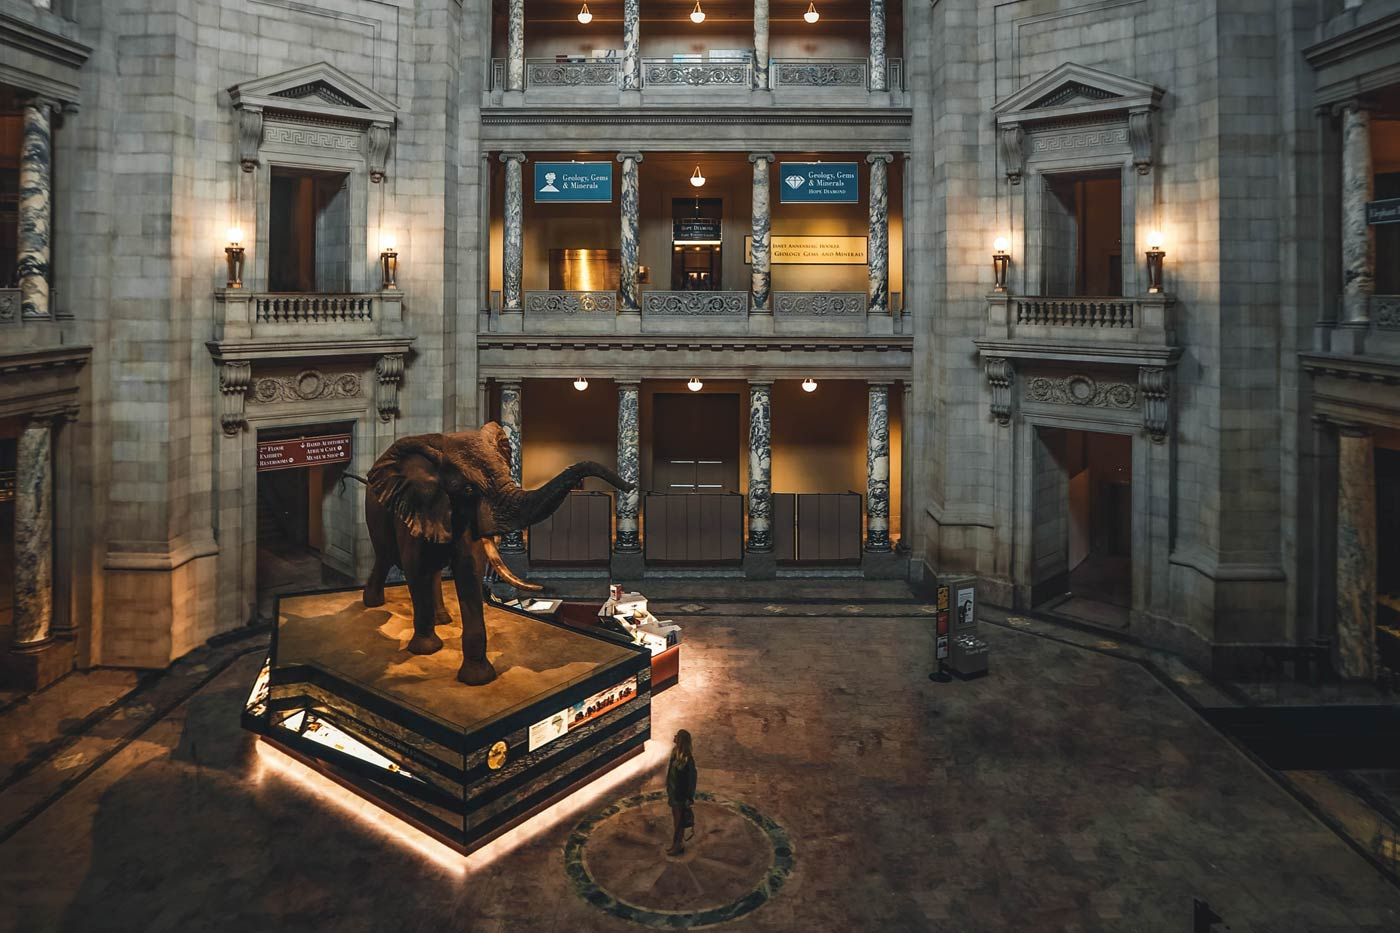 black elephant statue in the center of the Smithsonian museum